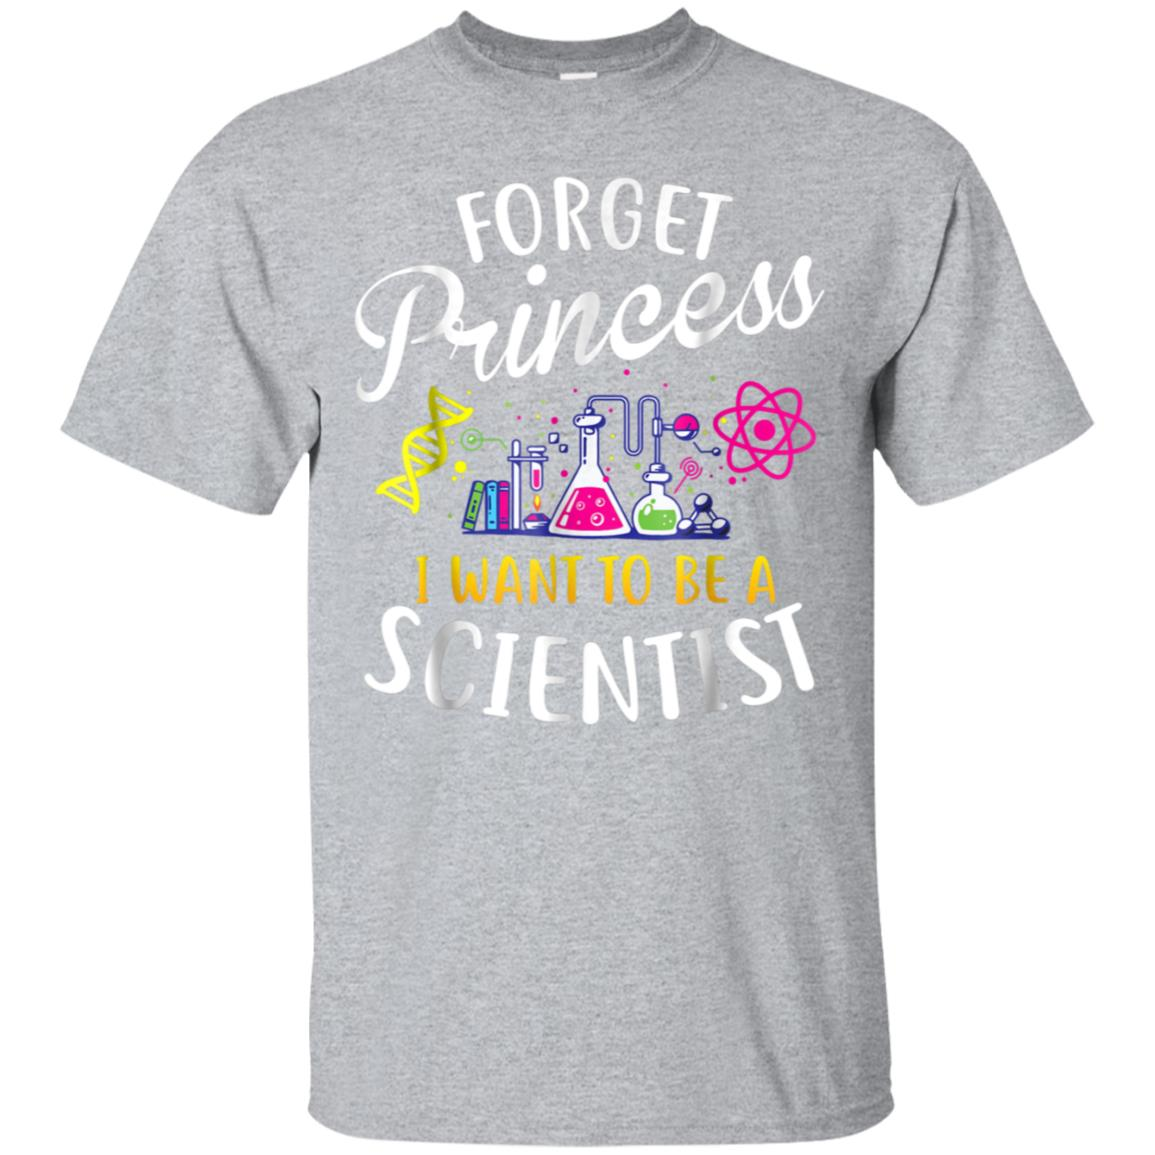 Forget Princess I Want To Be A Scientist Girl Science Tshirt 99promocode